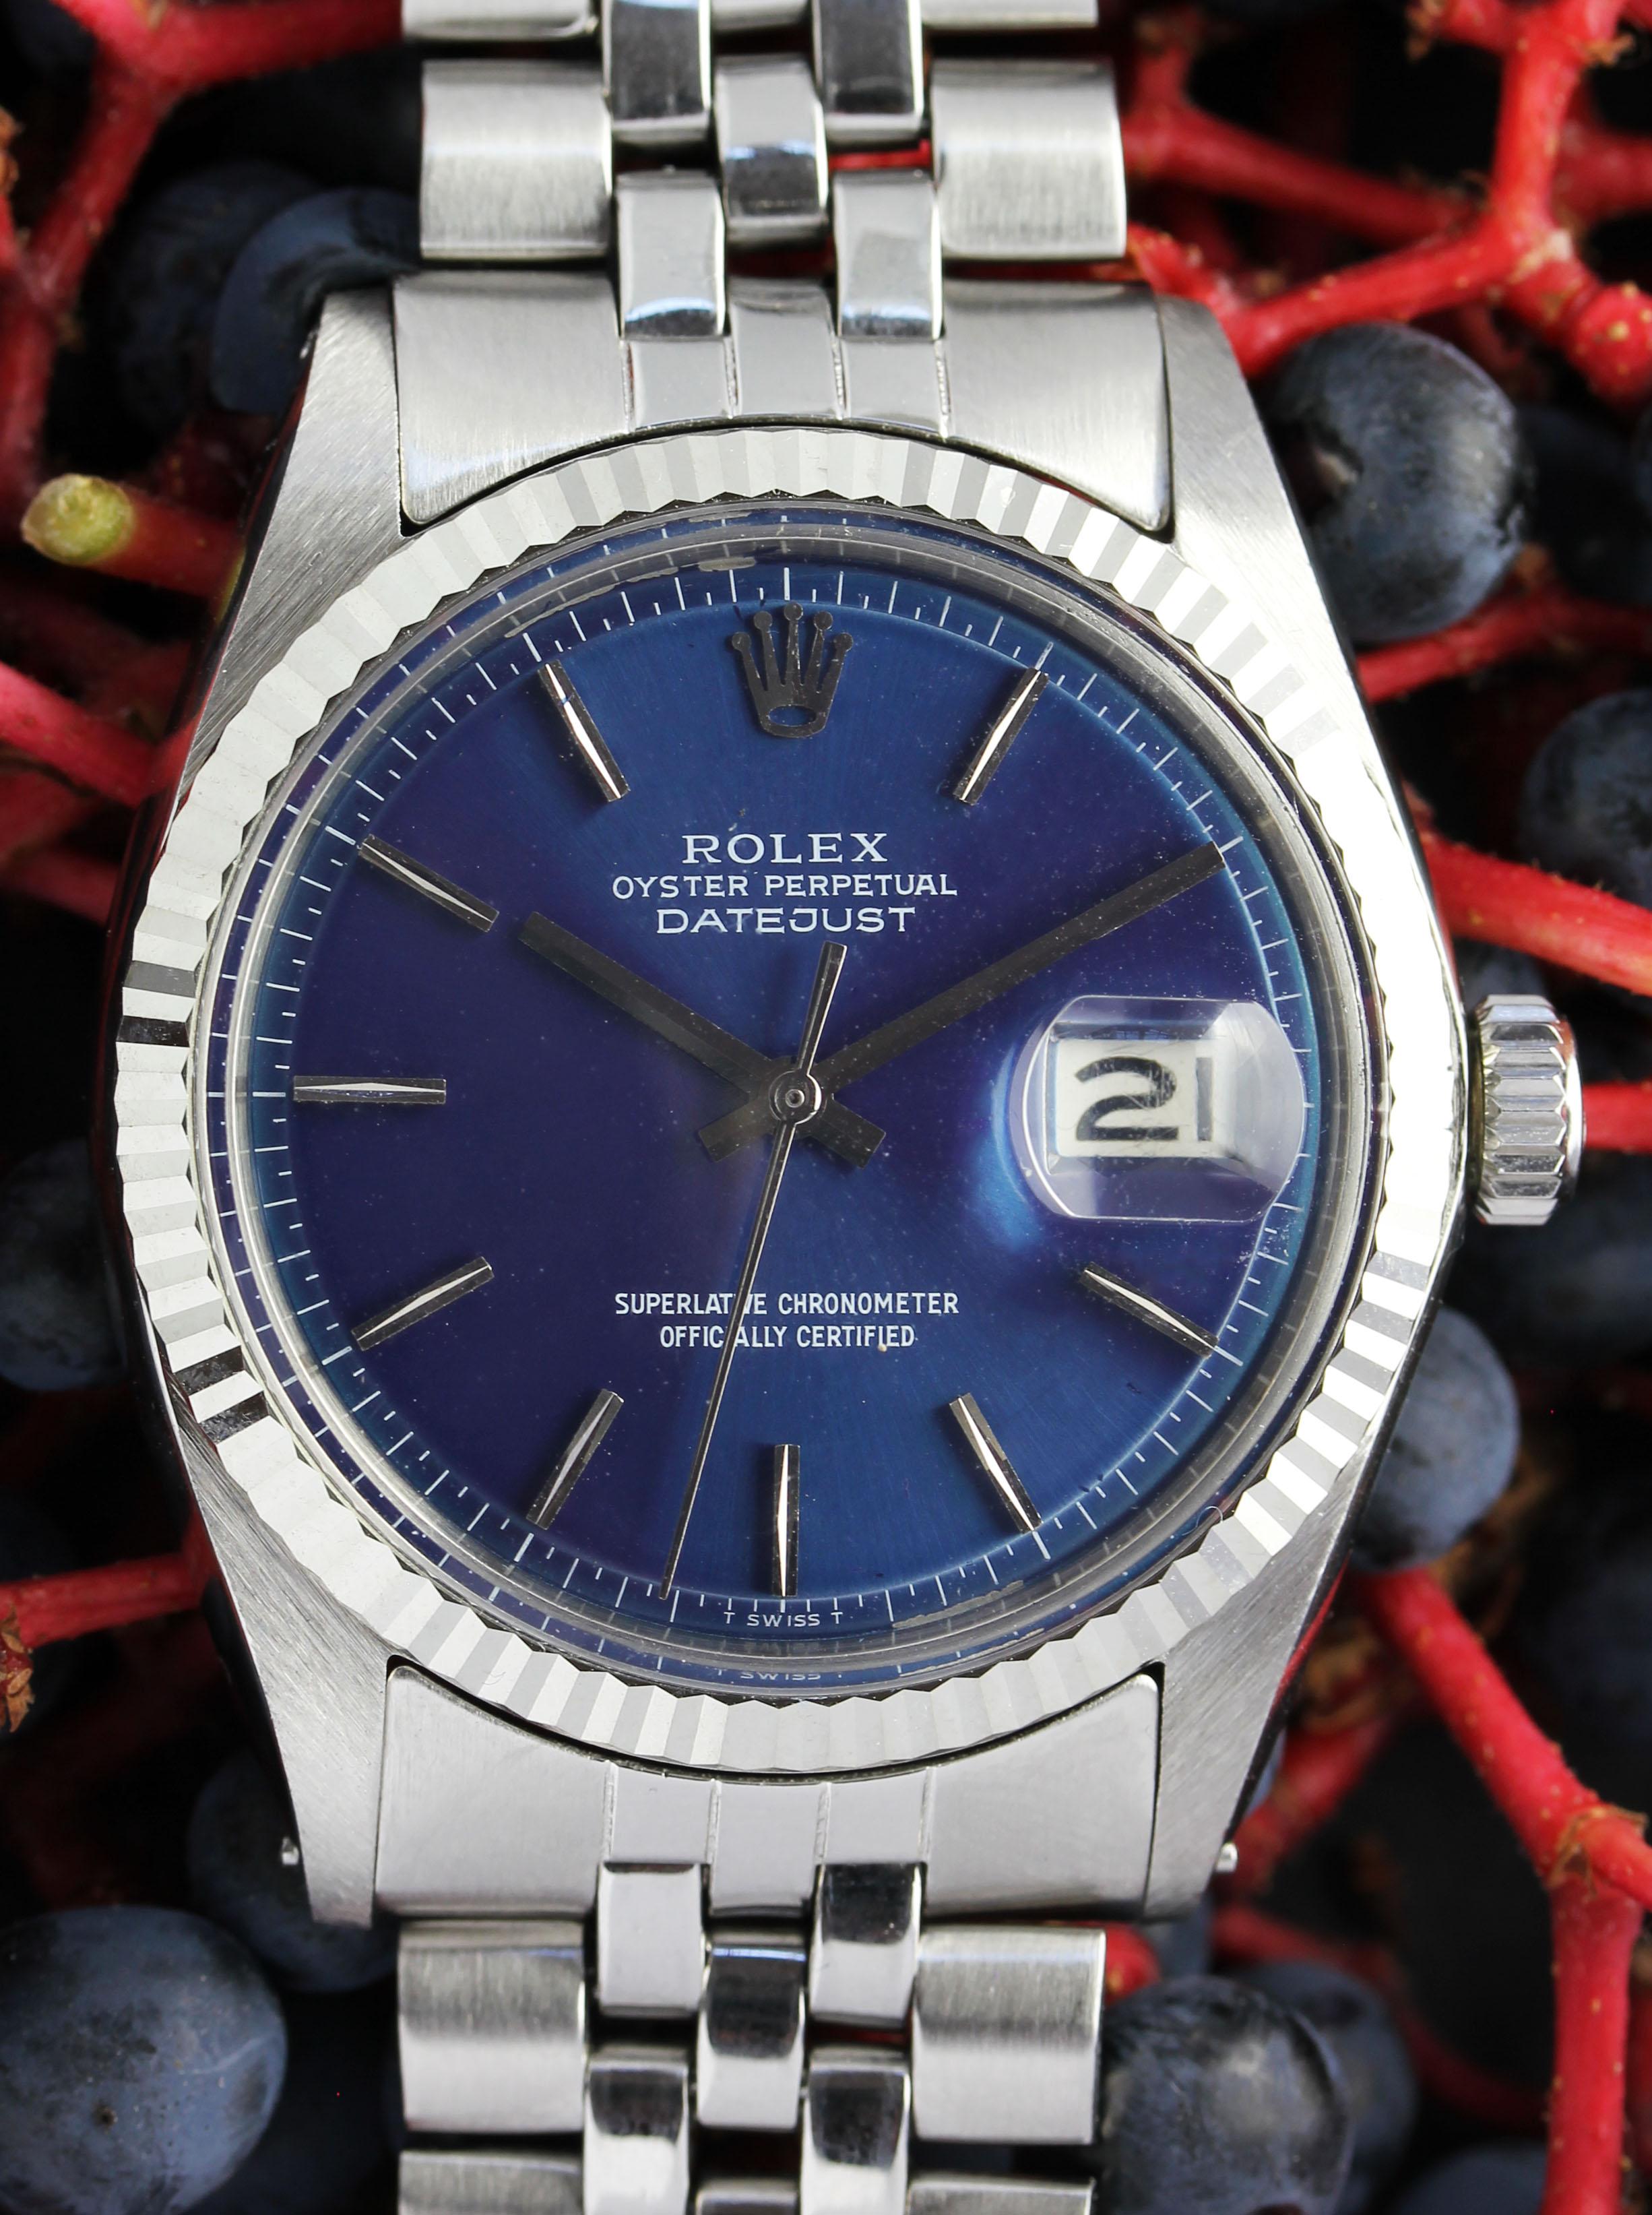 ROLEX Datejust from 1970 with rare blue dial